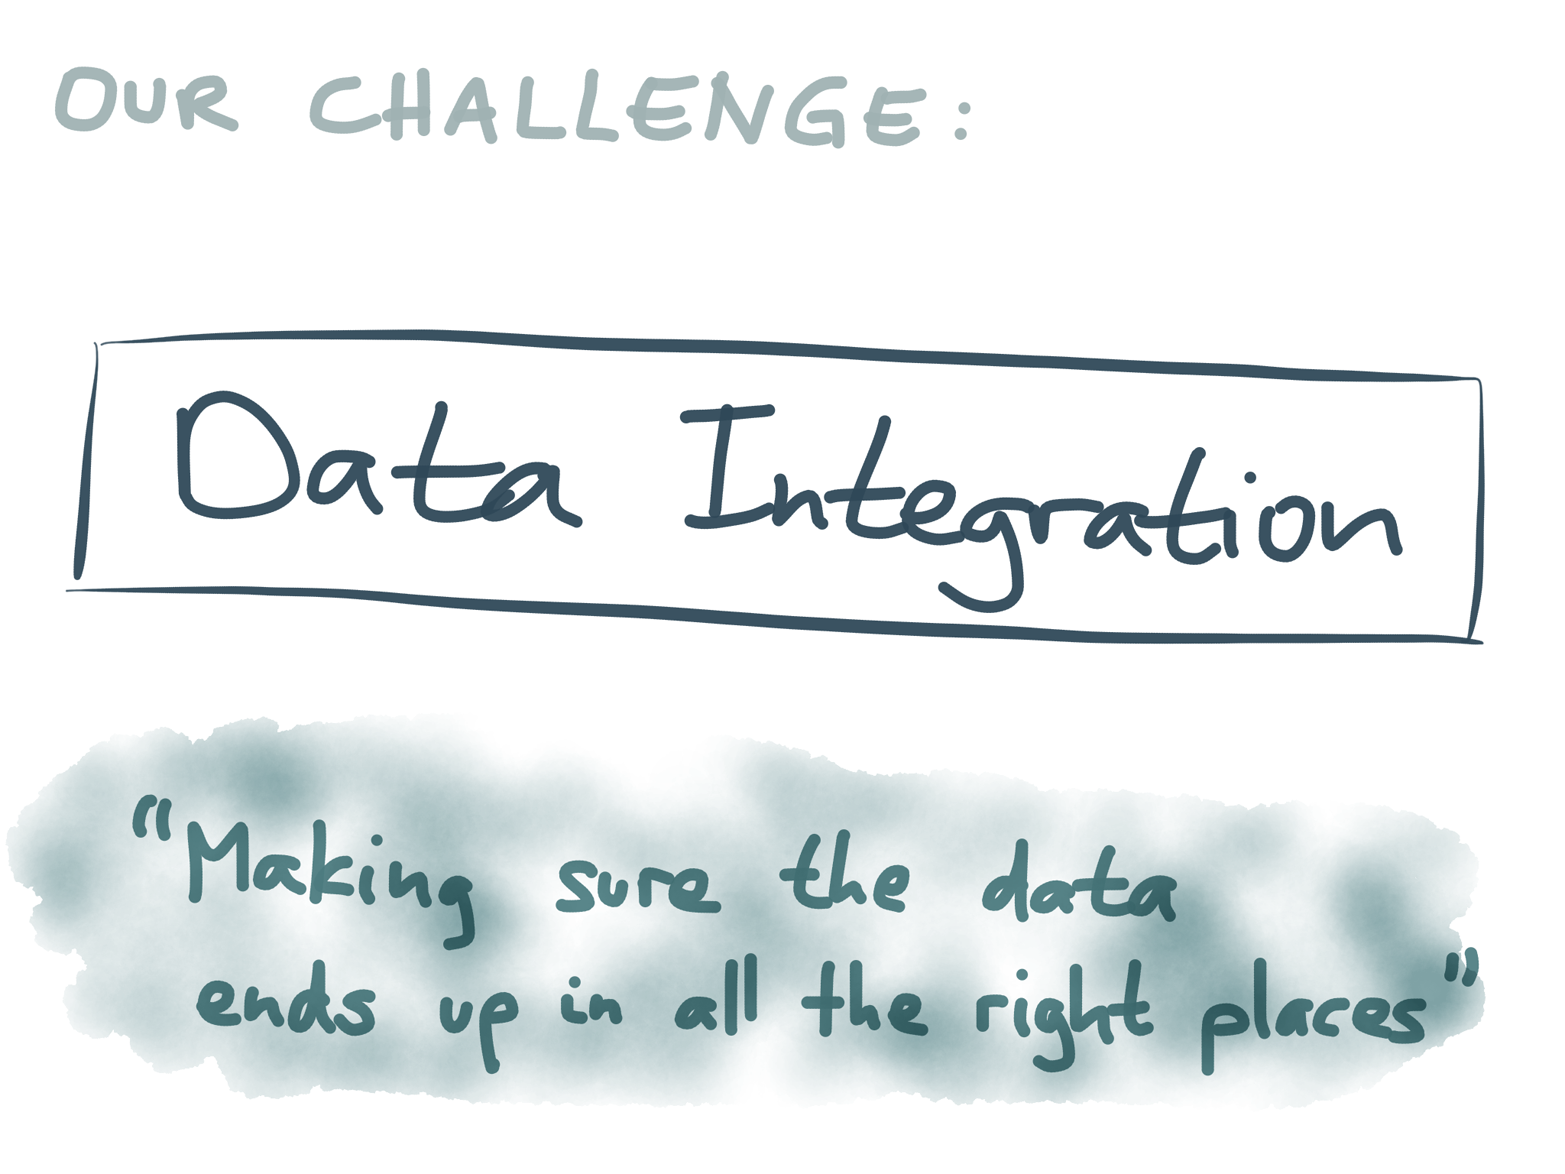 The problem of data integration: keeping data systems synchronized.